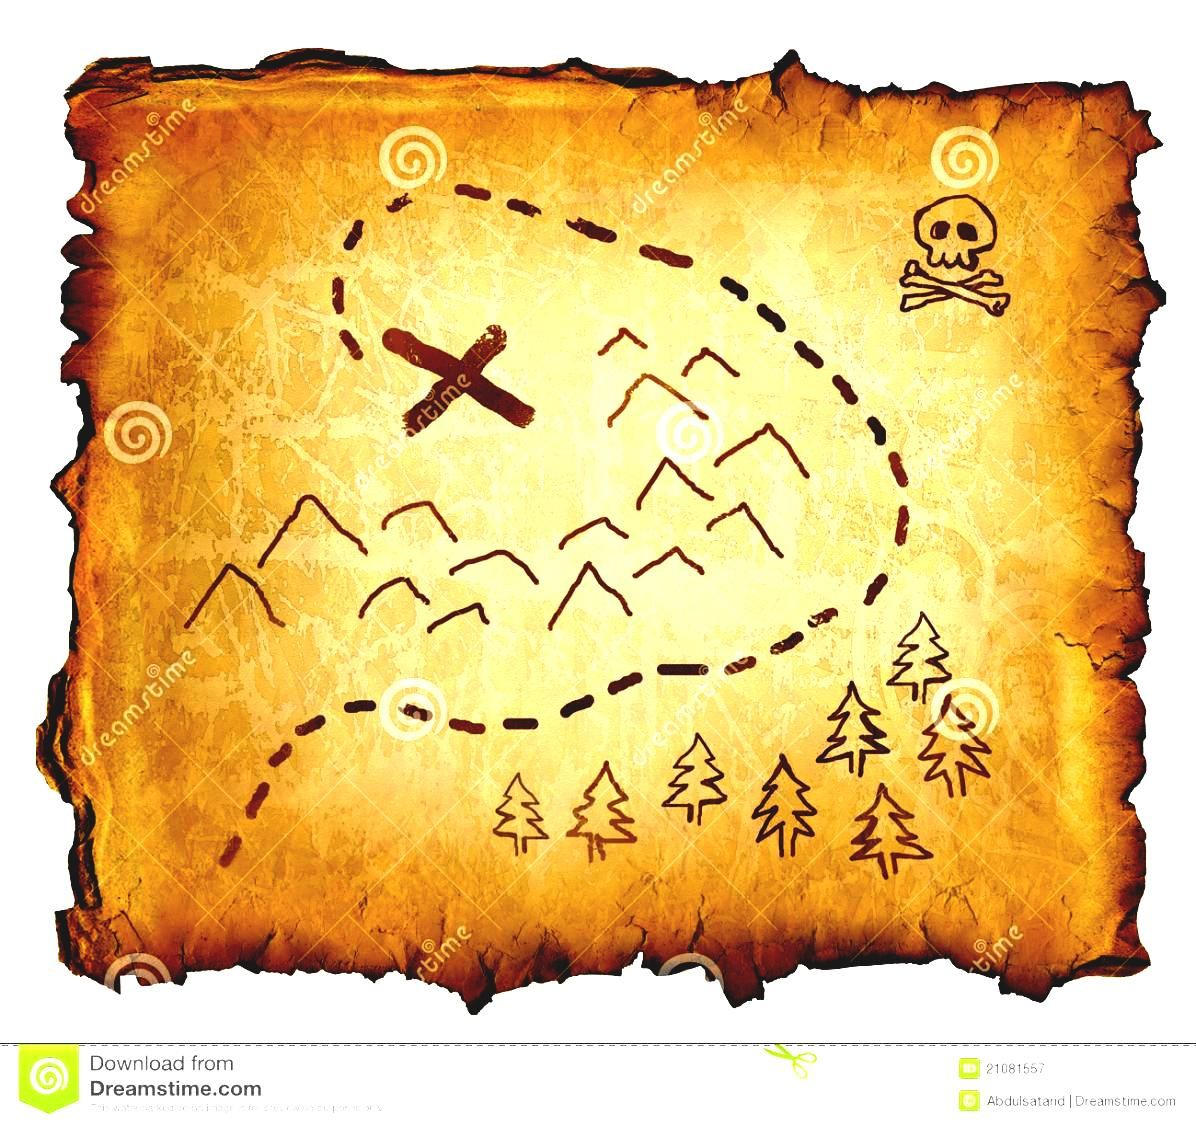 Blank treasure map clipart royalty free stock photo image pirate blank treasure map clipart royalty free stock photo image pirate gumiabroncs